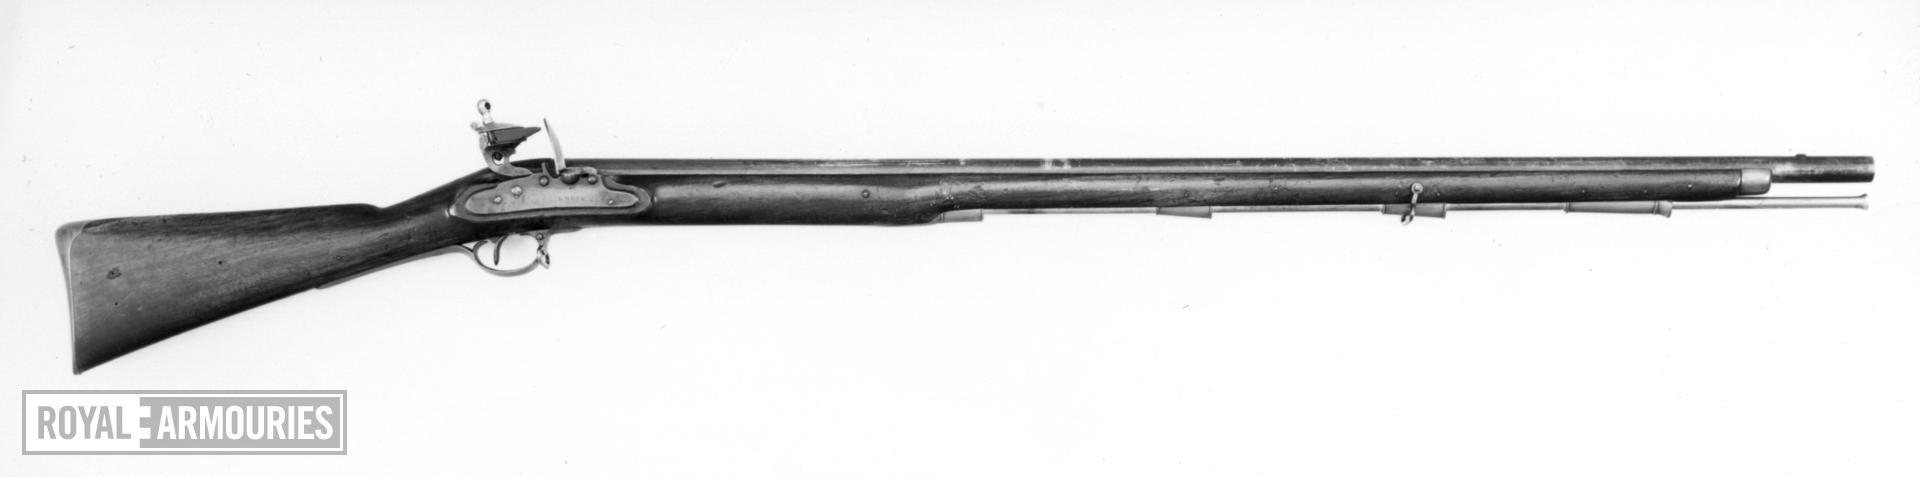 Flintlock muzzle-loading military musket - Duke of Richmond's Musket Rammer to the Muzzle Pattern Experimental, by H. Nock with screwless lock An order for 10,000 was placed on December 26th 1792, but was not completed until 1797.